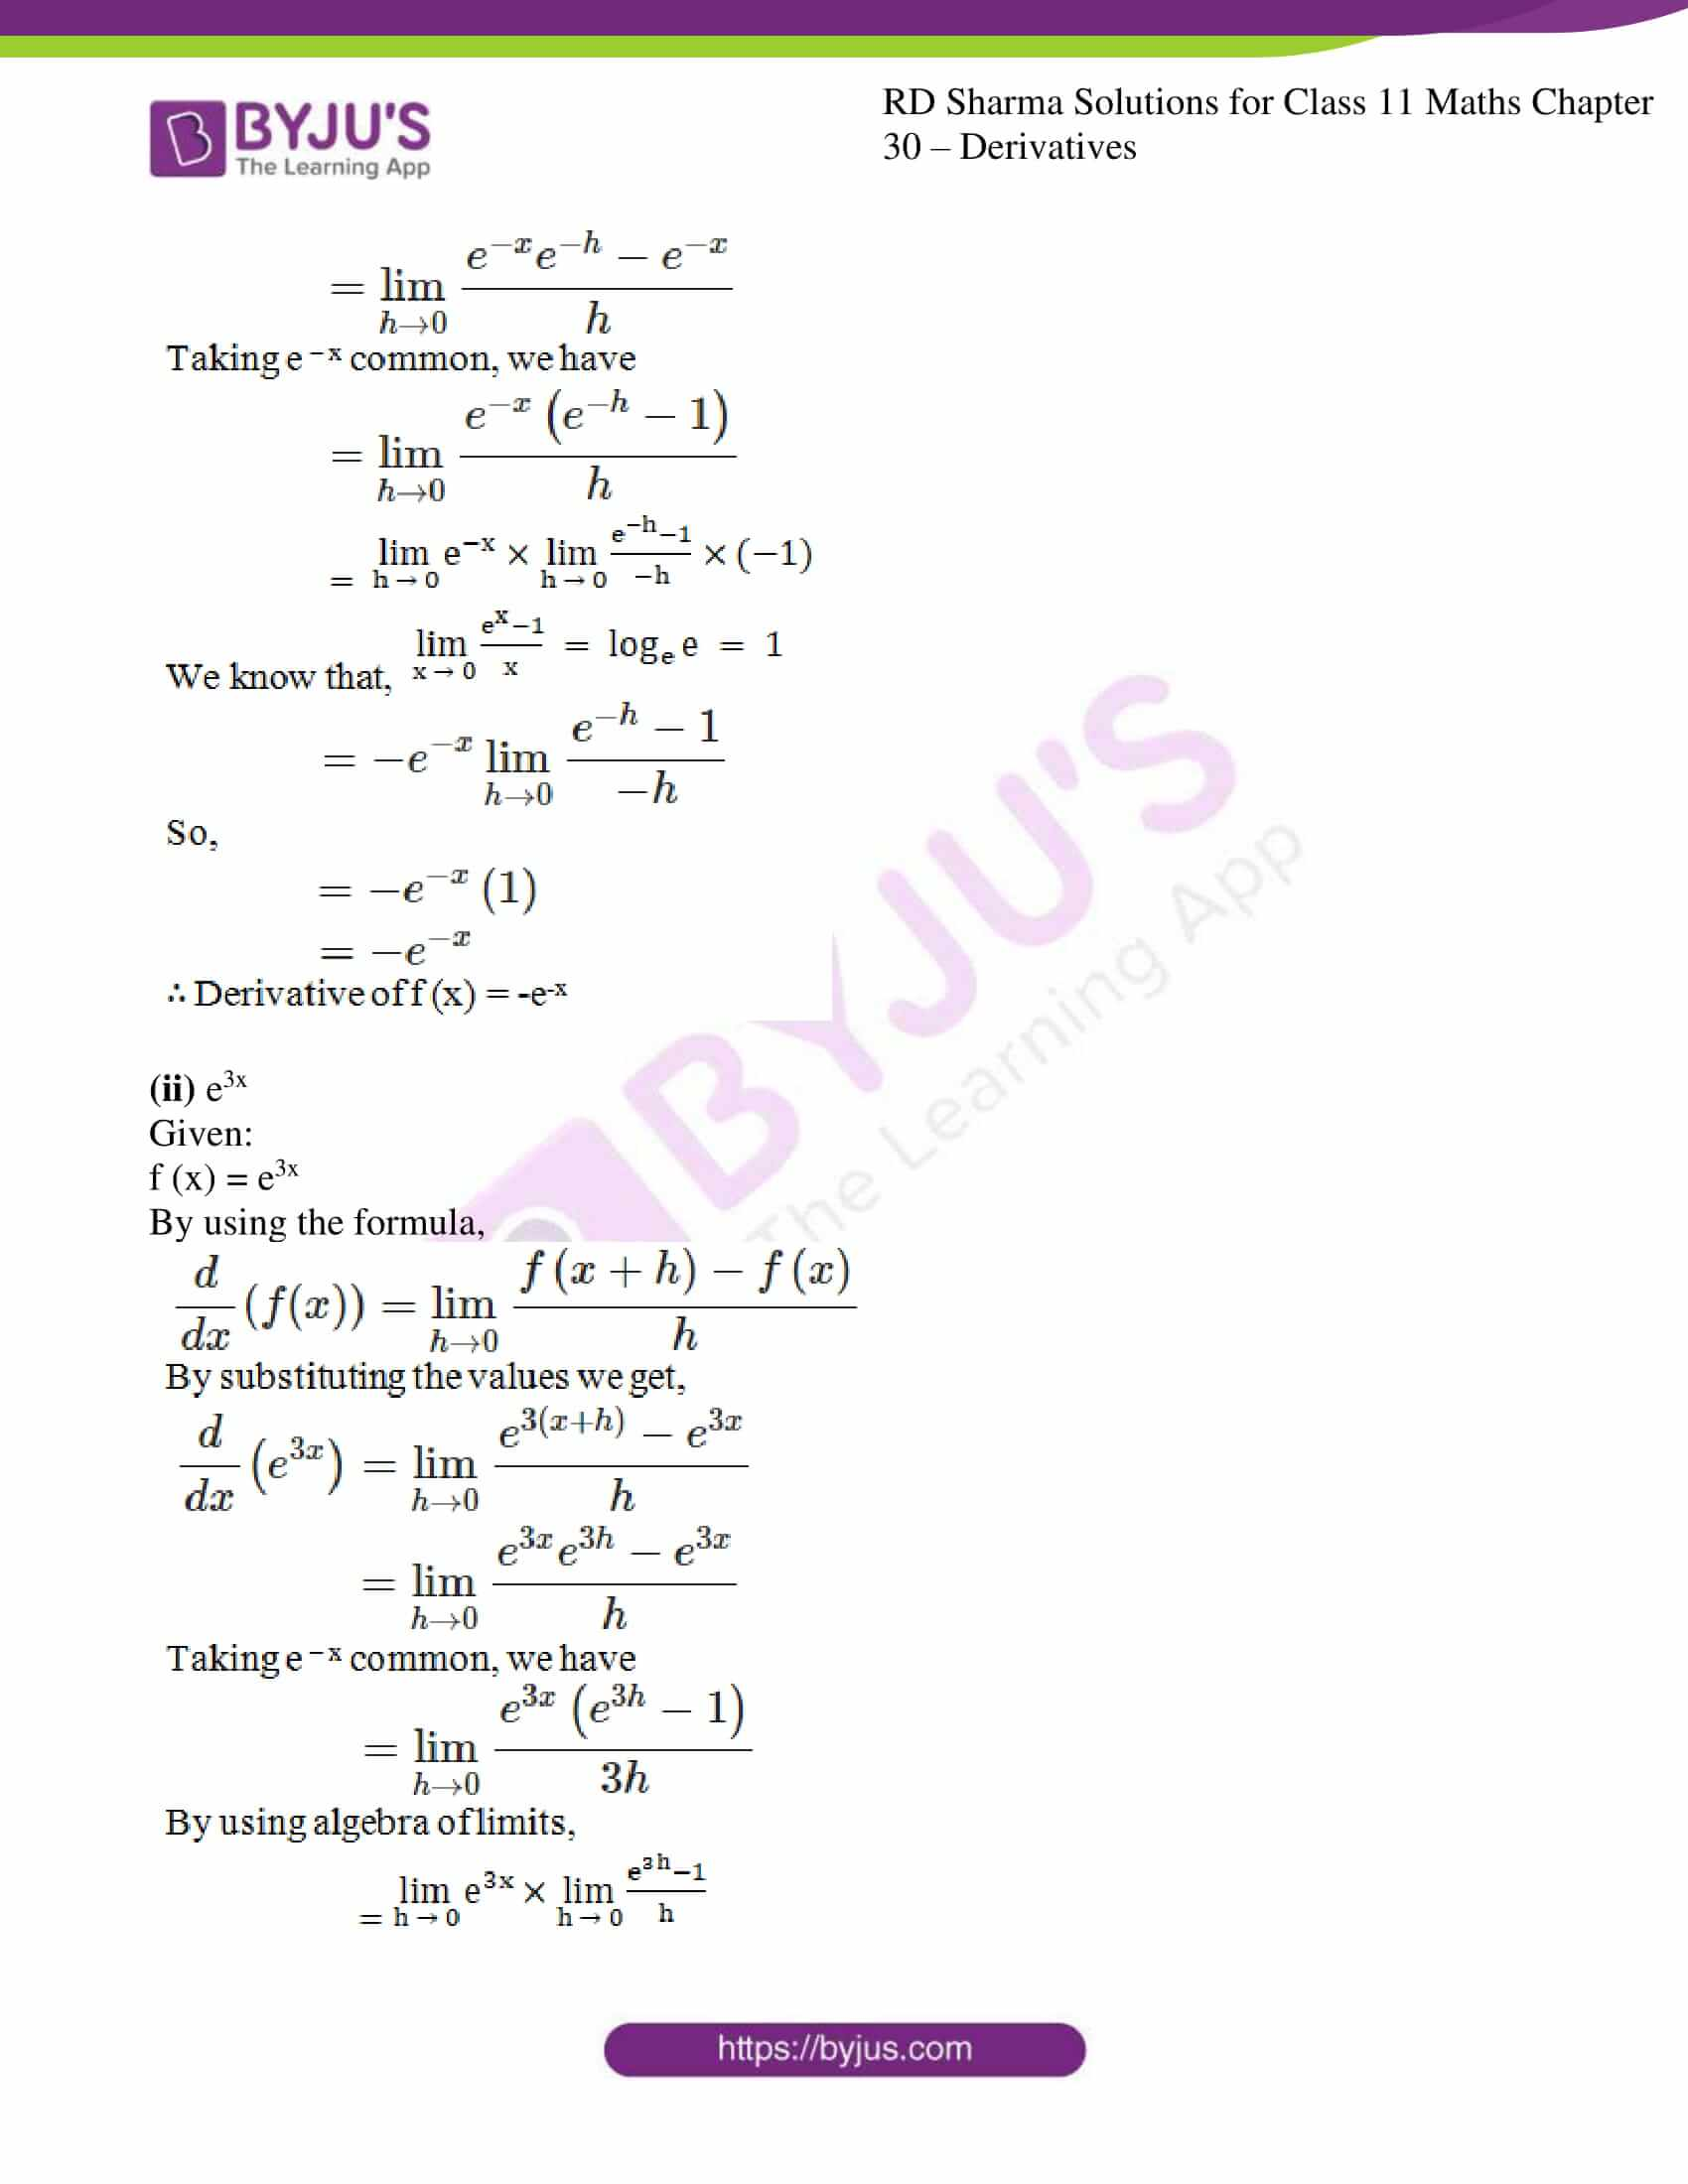 rd sharma class 11 maths chapter 30 ex 2 06